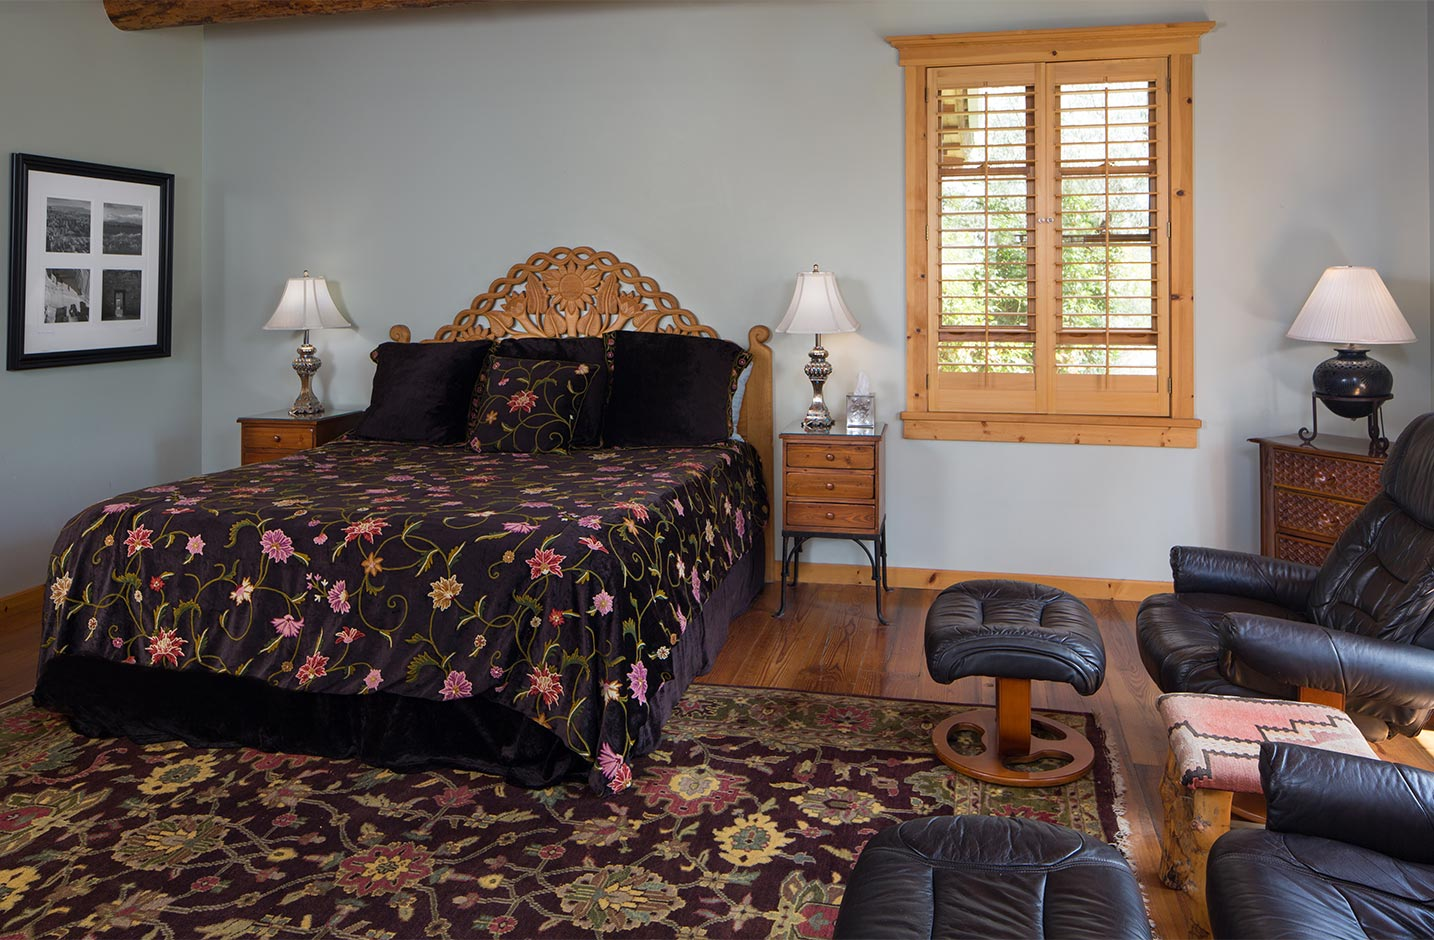 A queen bed in a spacious room with a seating area